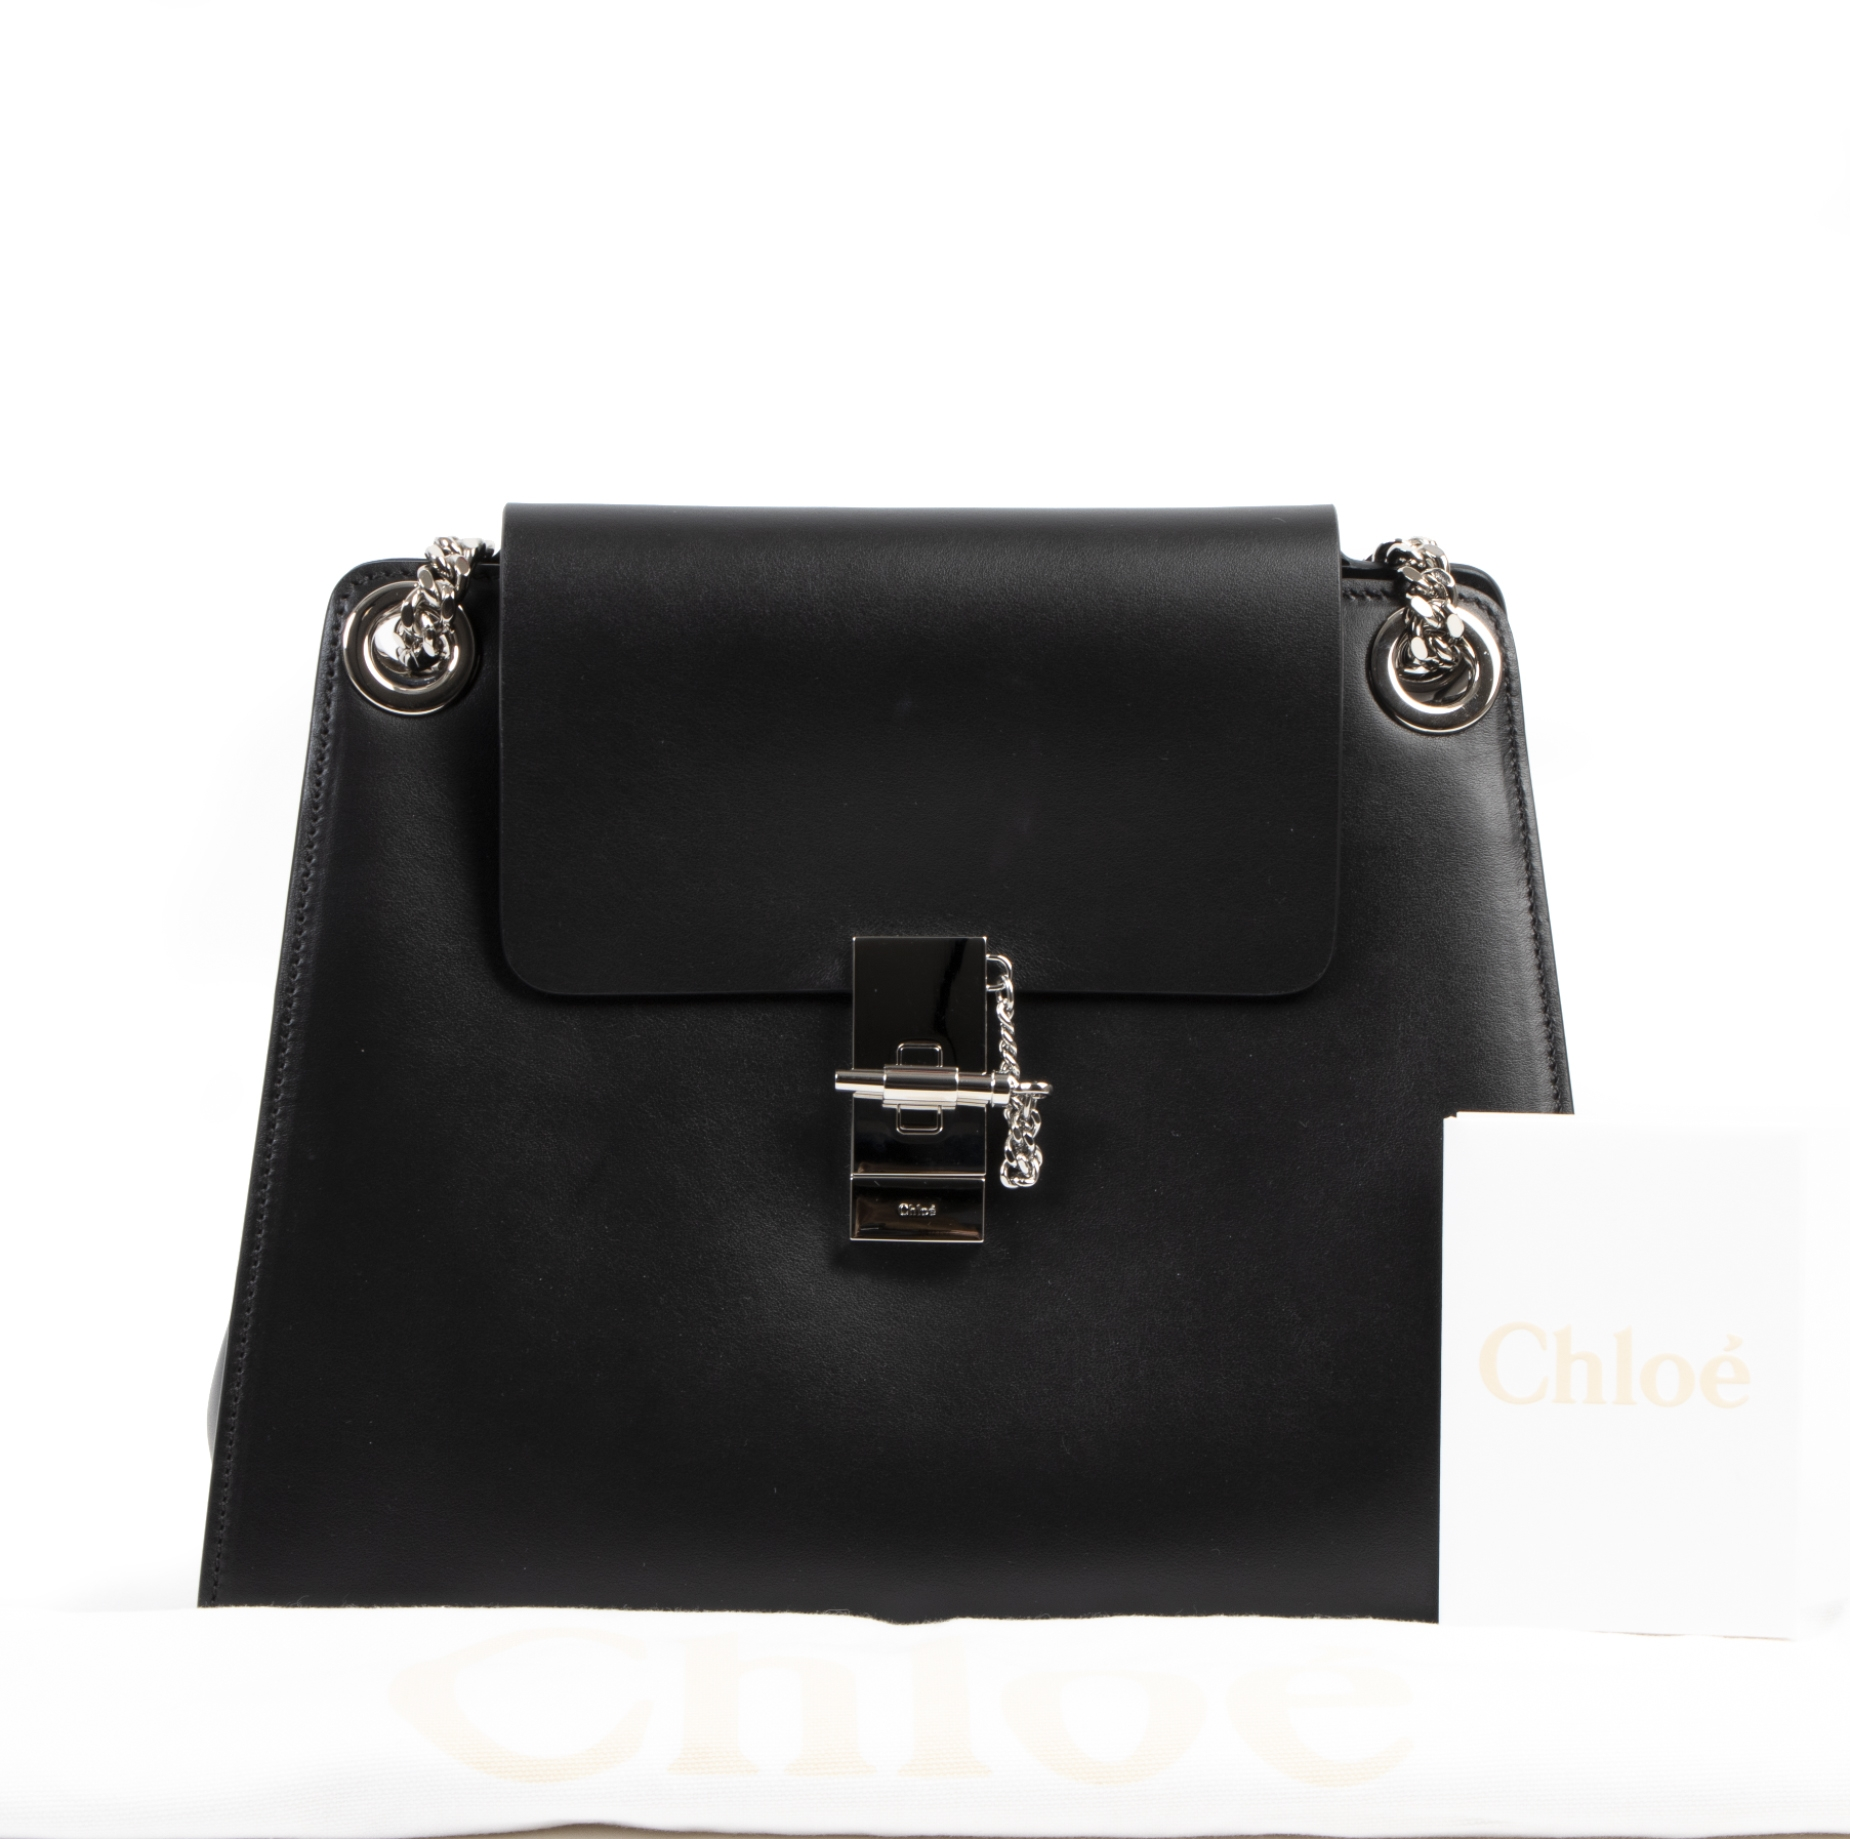 Chloé Black Annie Shoulder Bag GHW for the best price at Labellov secondhand luxury